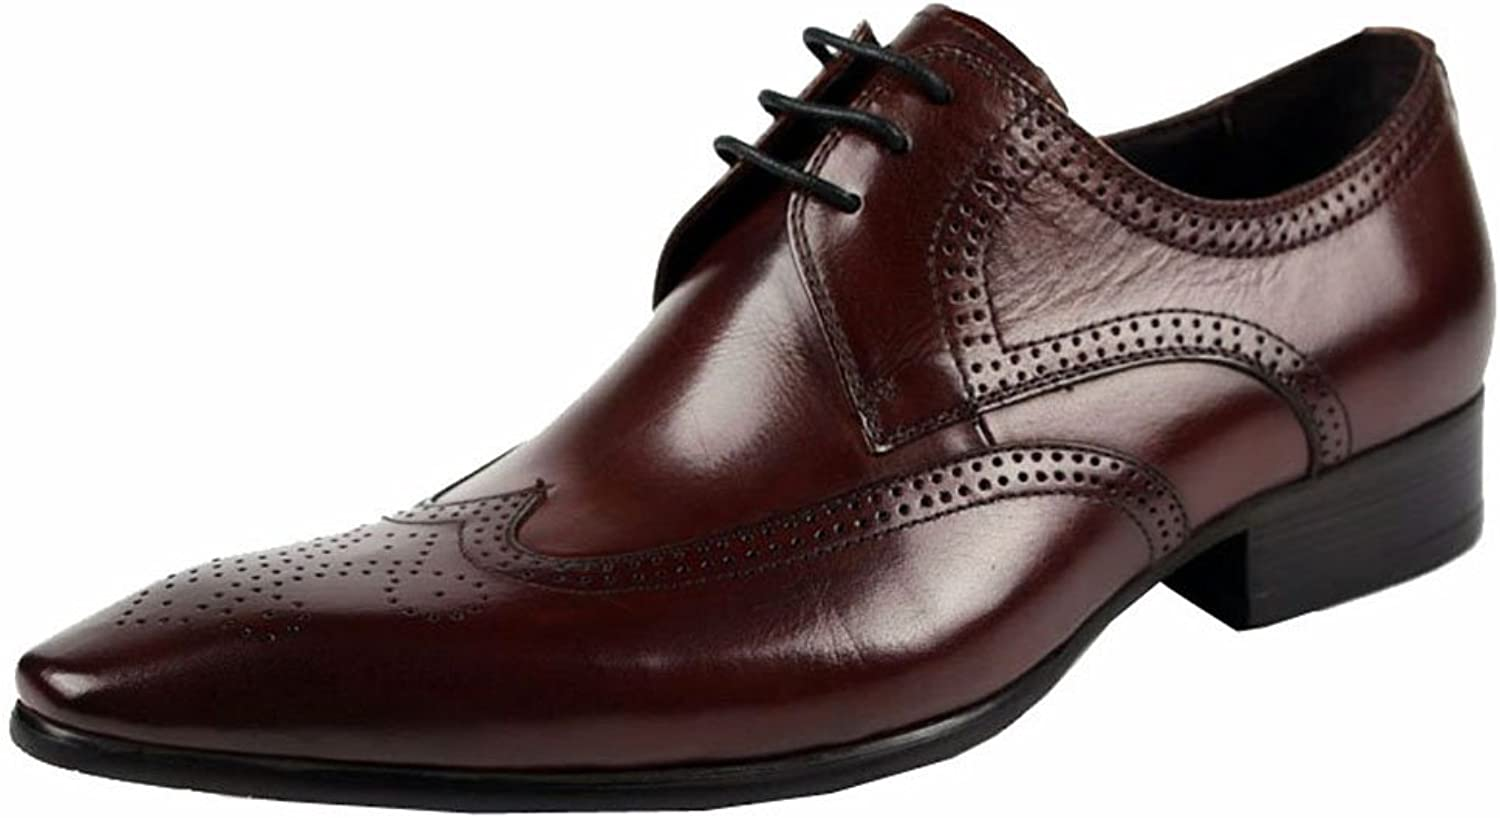 Wuf Mens Real Leather Dress shoes Brogues Wing Tip